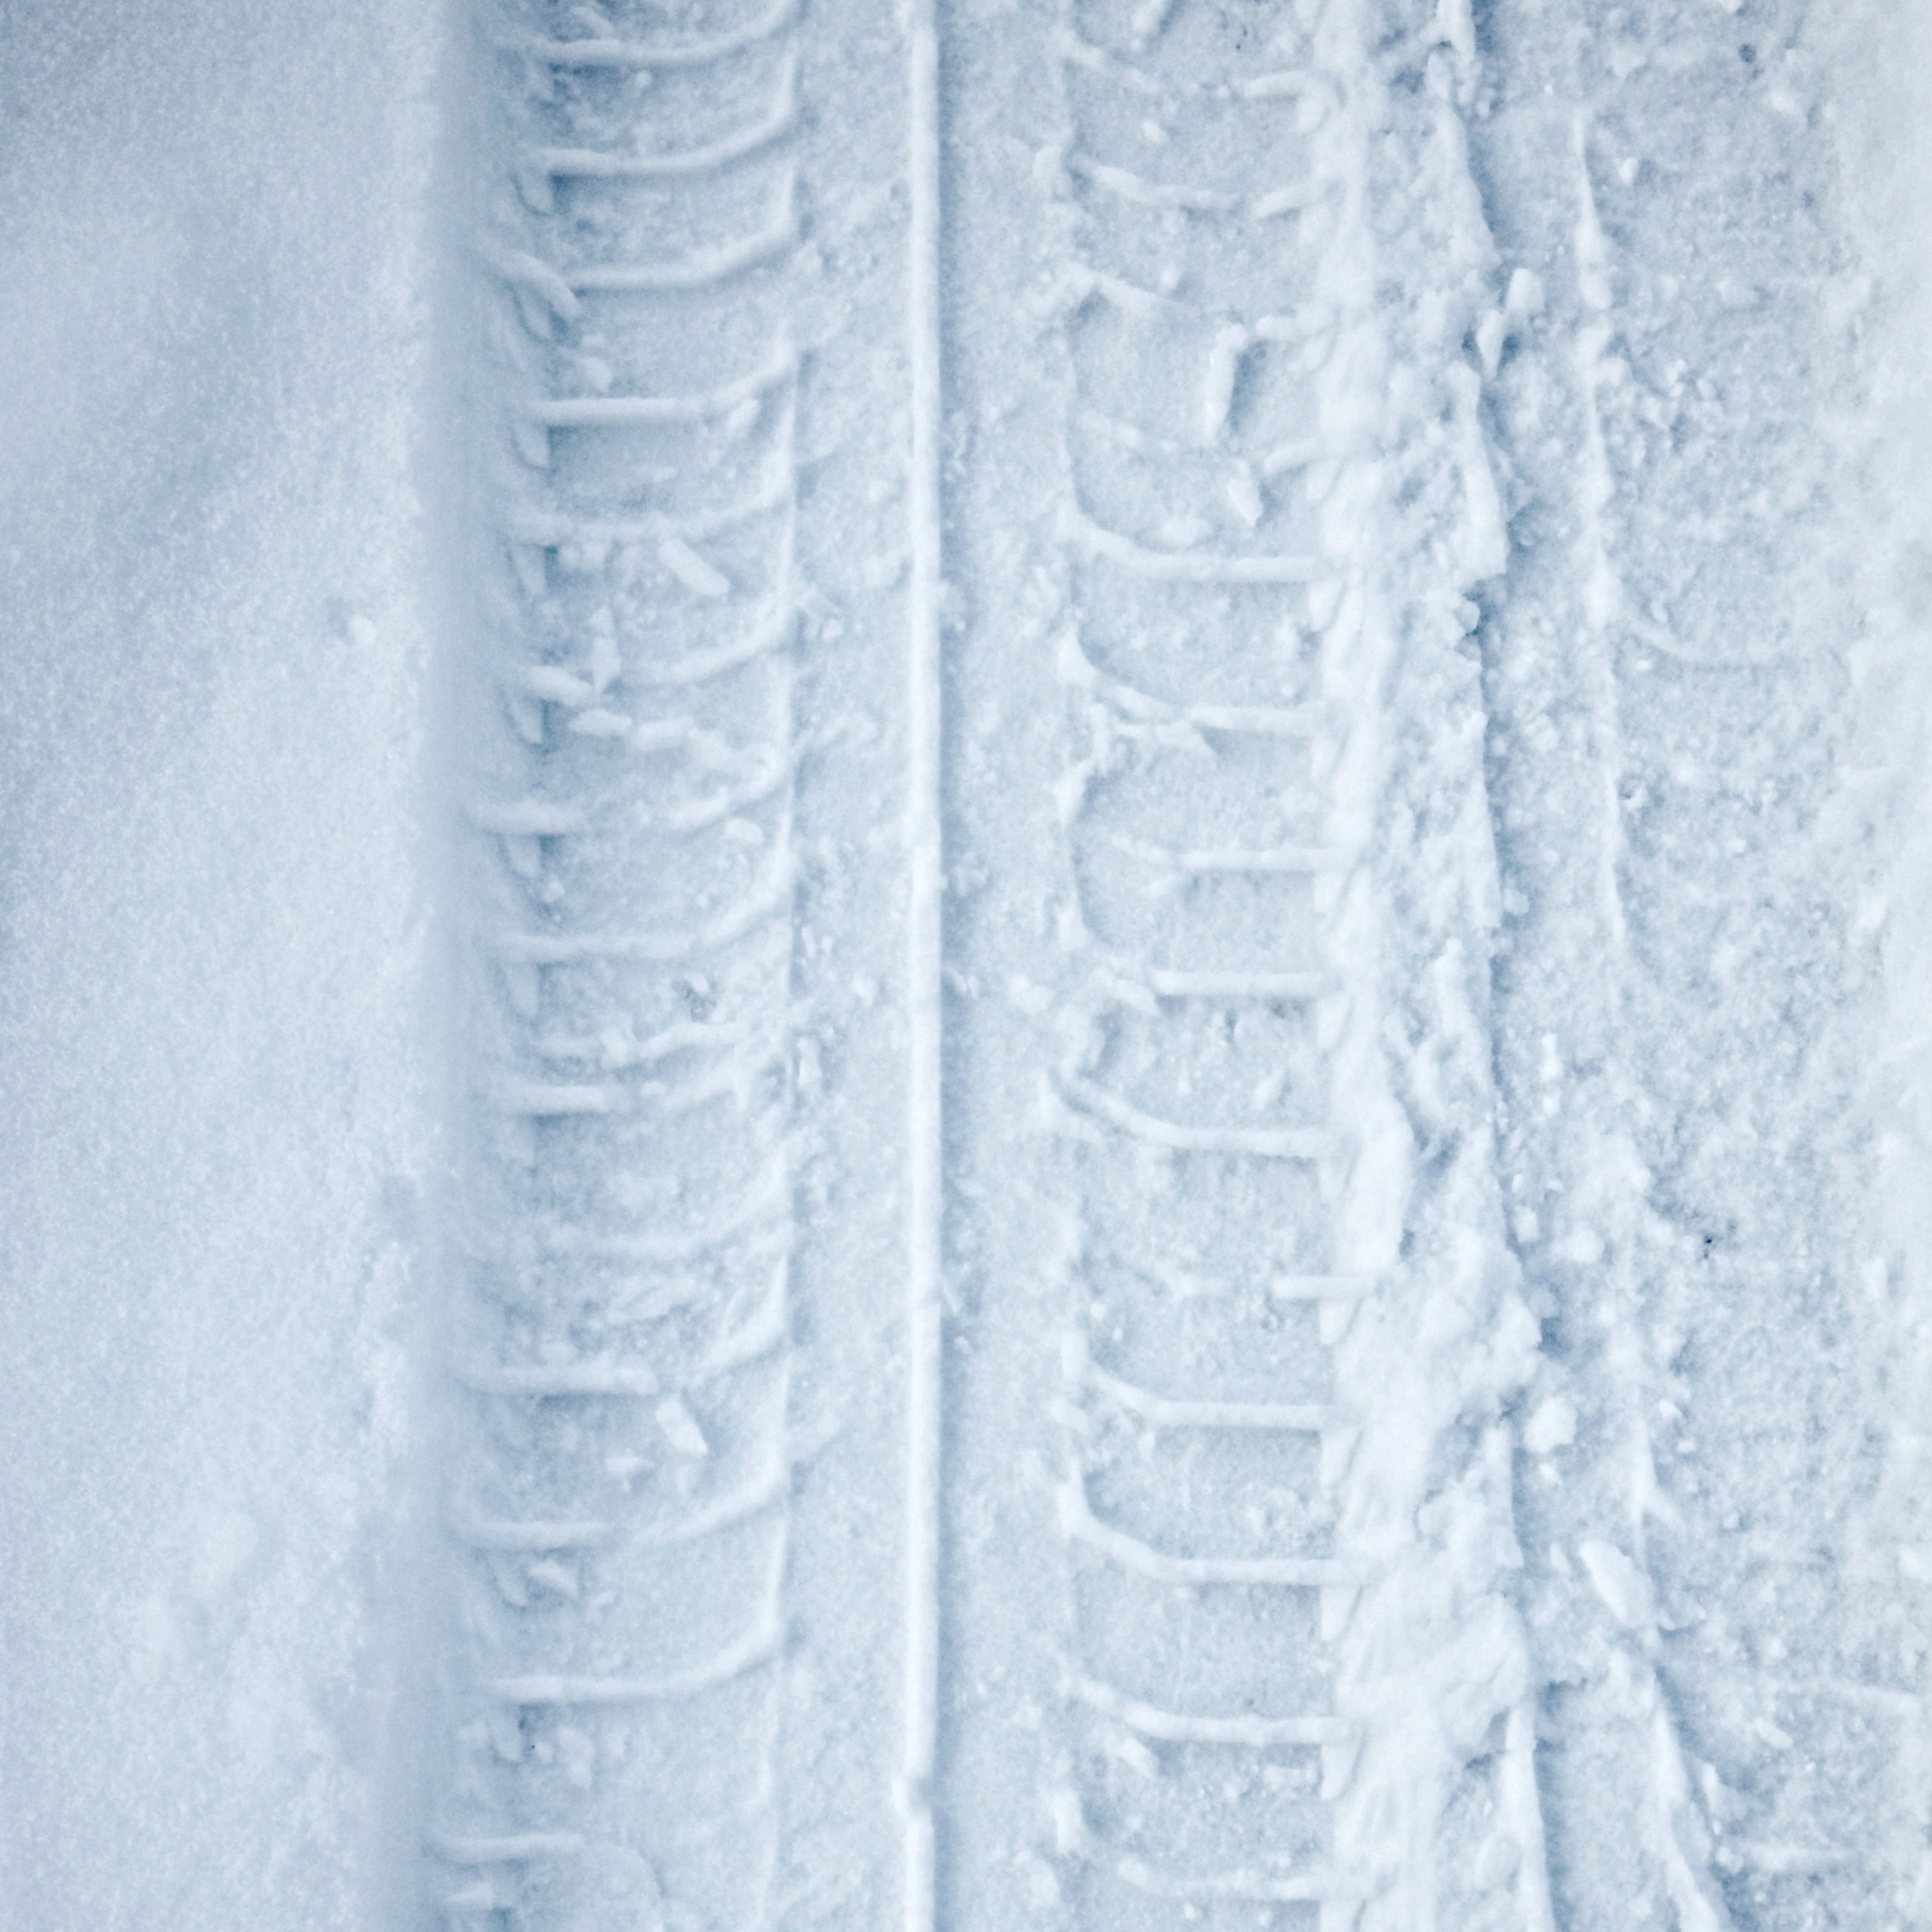 Tyre Track Snow Winter iPad Wallpaper